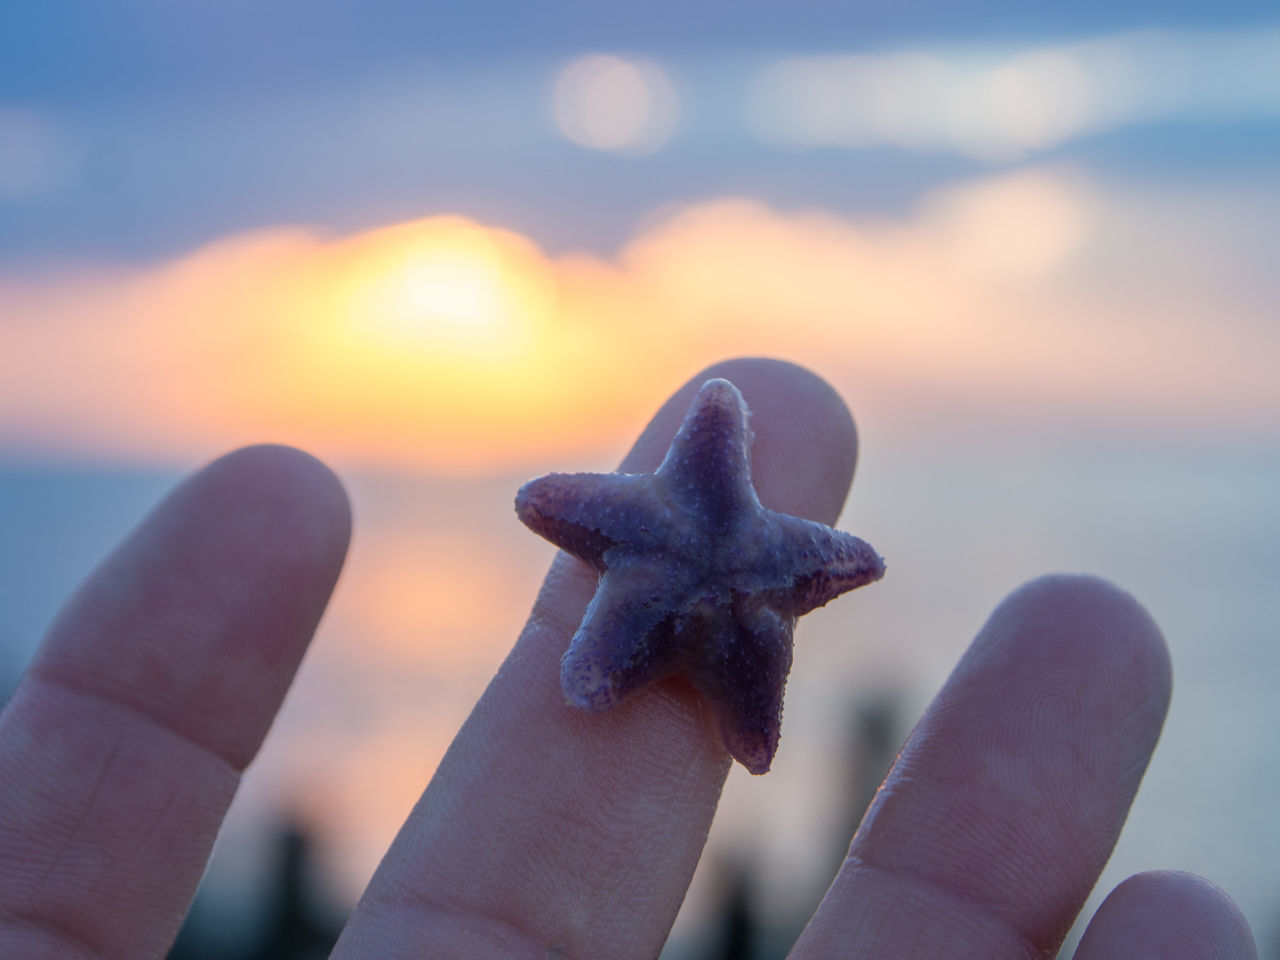 ⭐️ Adult Adults Only Beach Close-up Day Focus On Foreground Human Body Part Human Hand Leisure Activity Lifestyles One Person Outdoors People Sea Sky Starfish  Starfish At Beach Sunlight Vacations